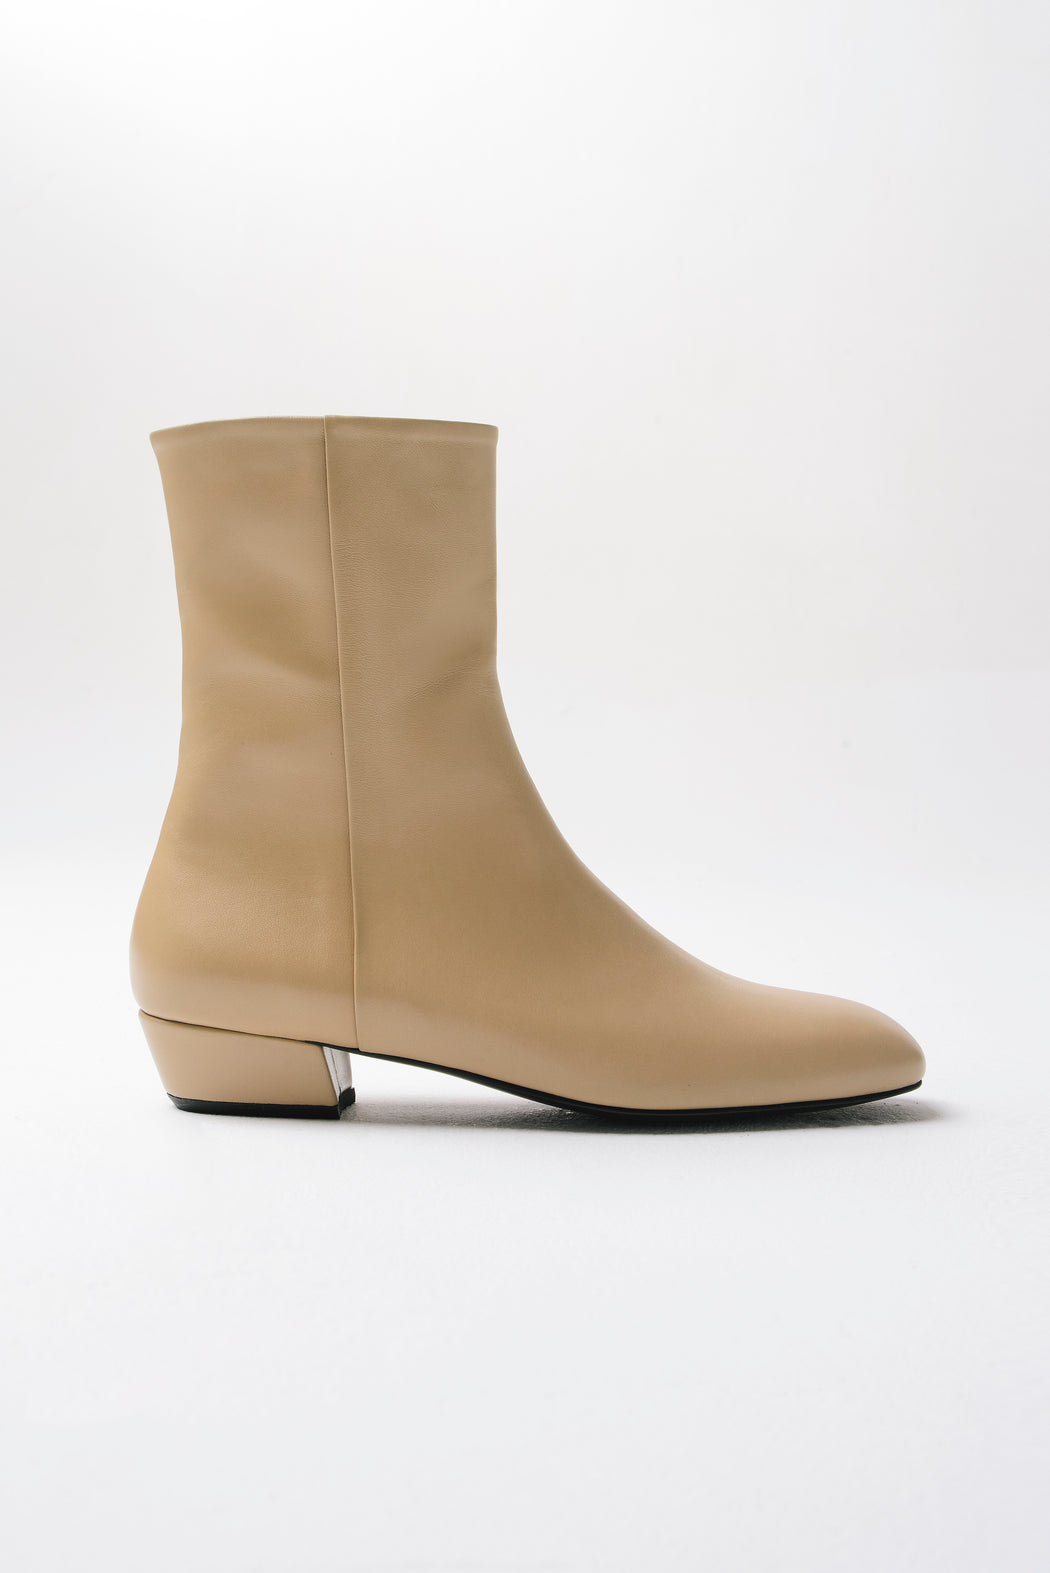 Garcon Boots | New Nude